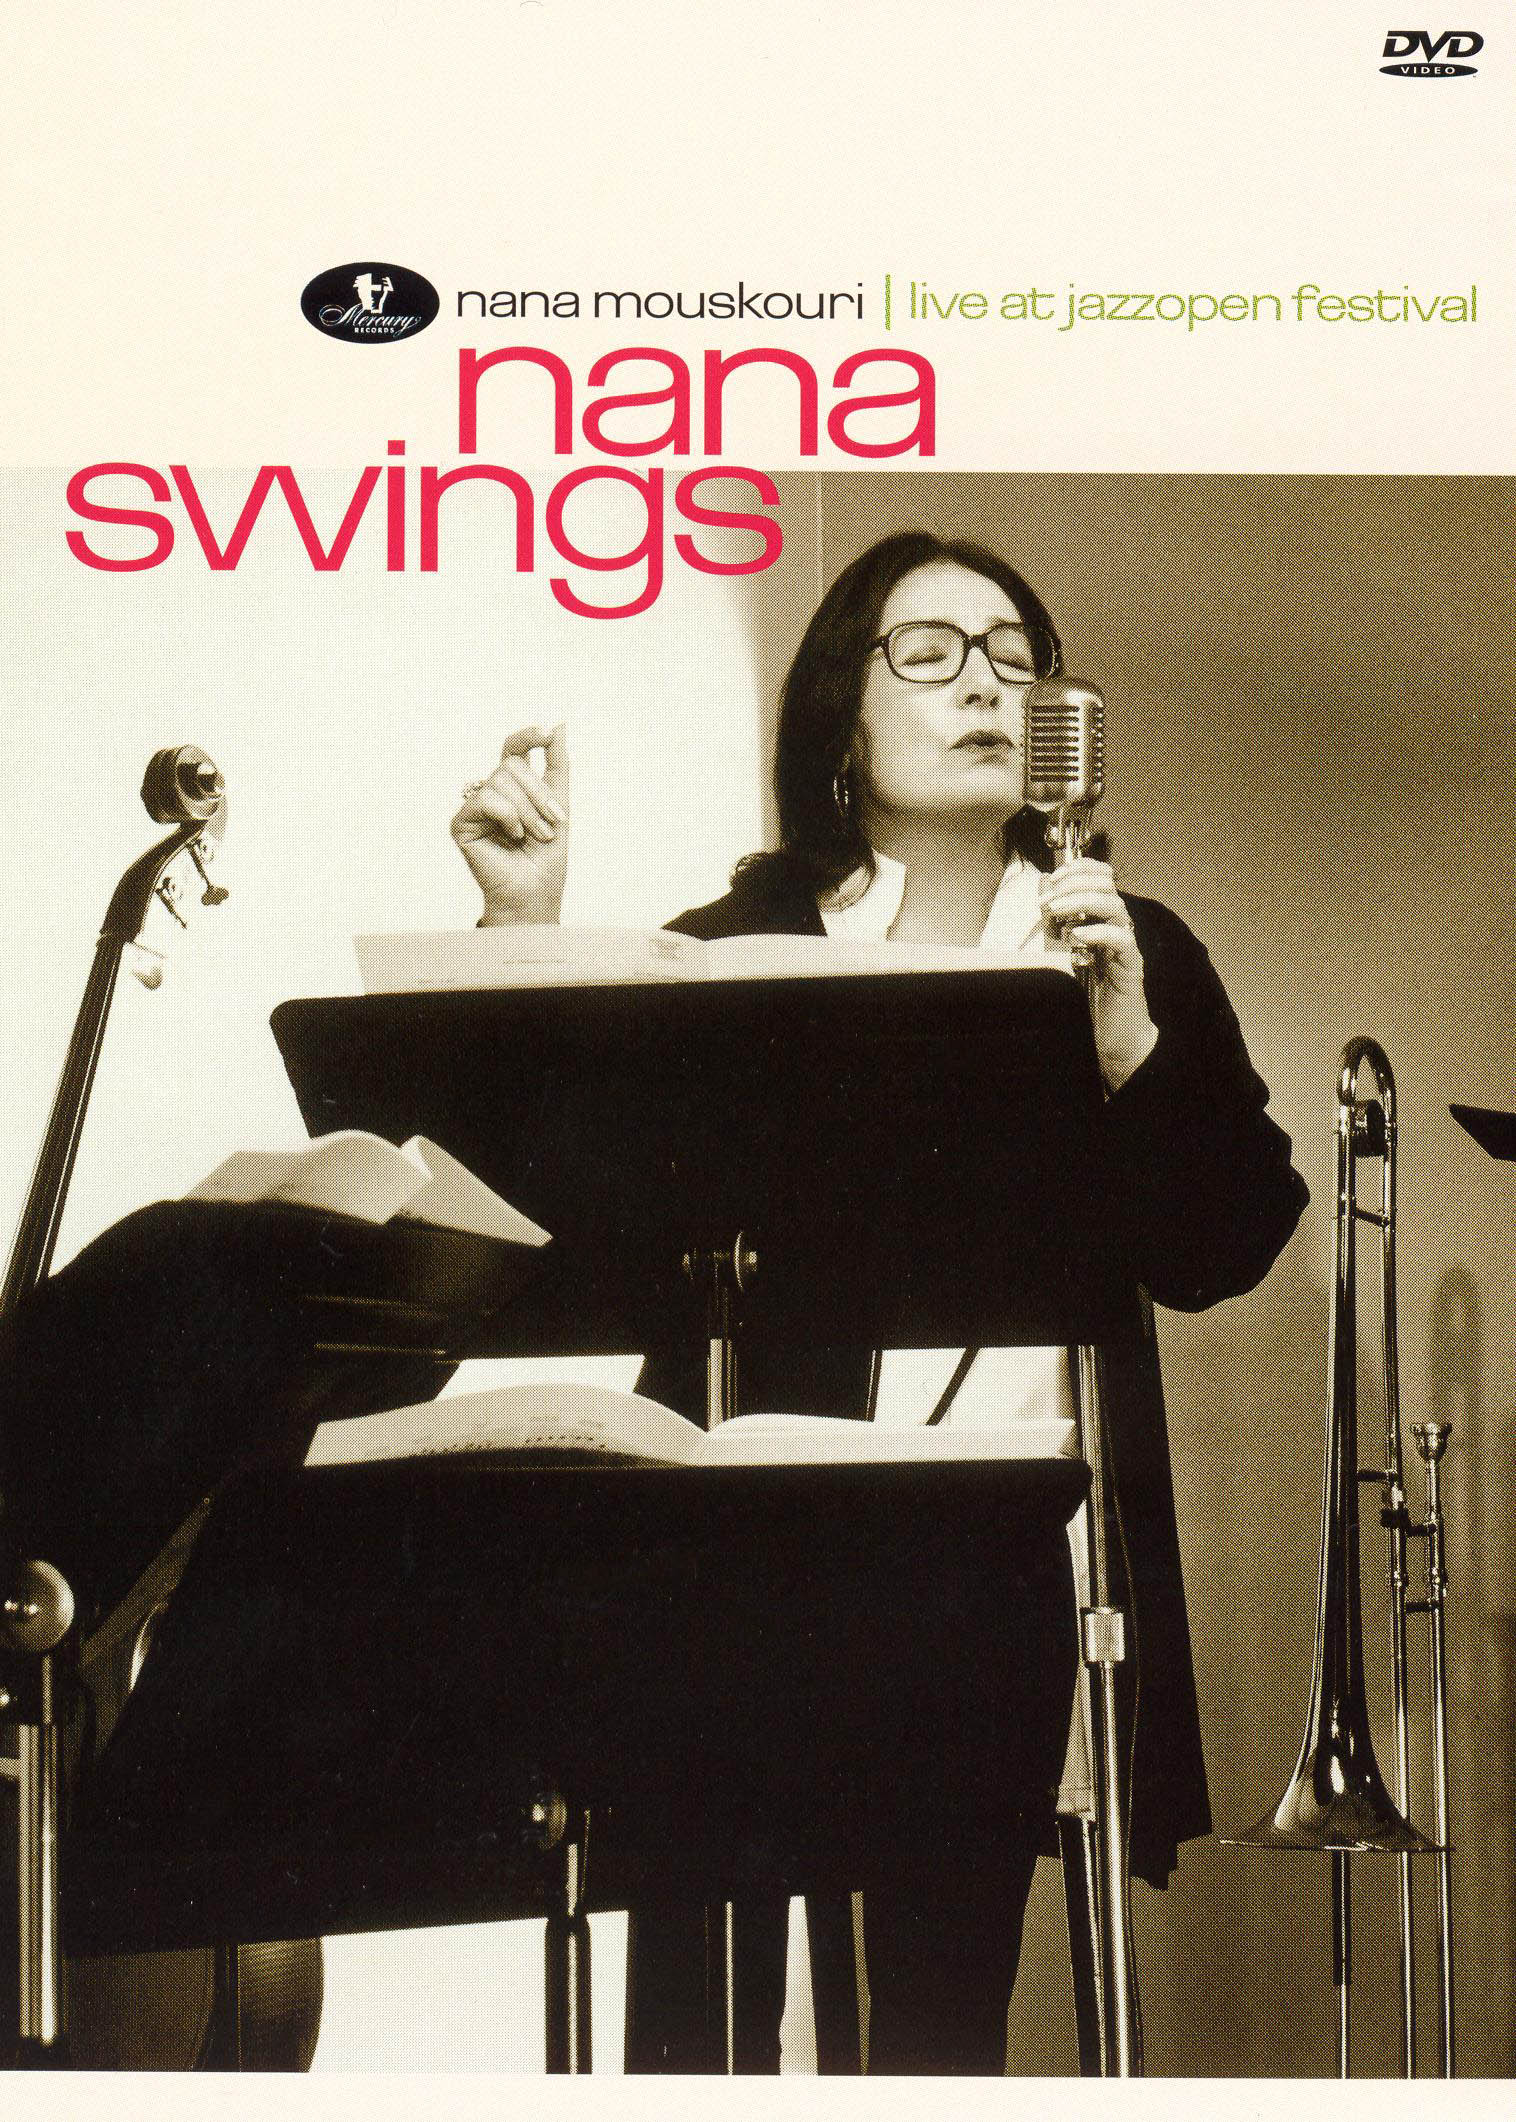 Nana Mouskouri: Nana Swings - Live at Jazzopen Festival